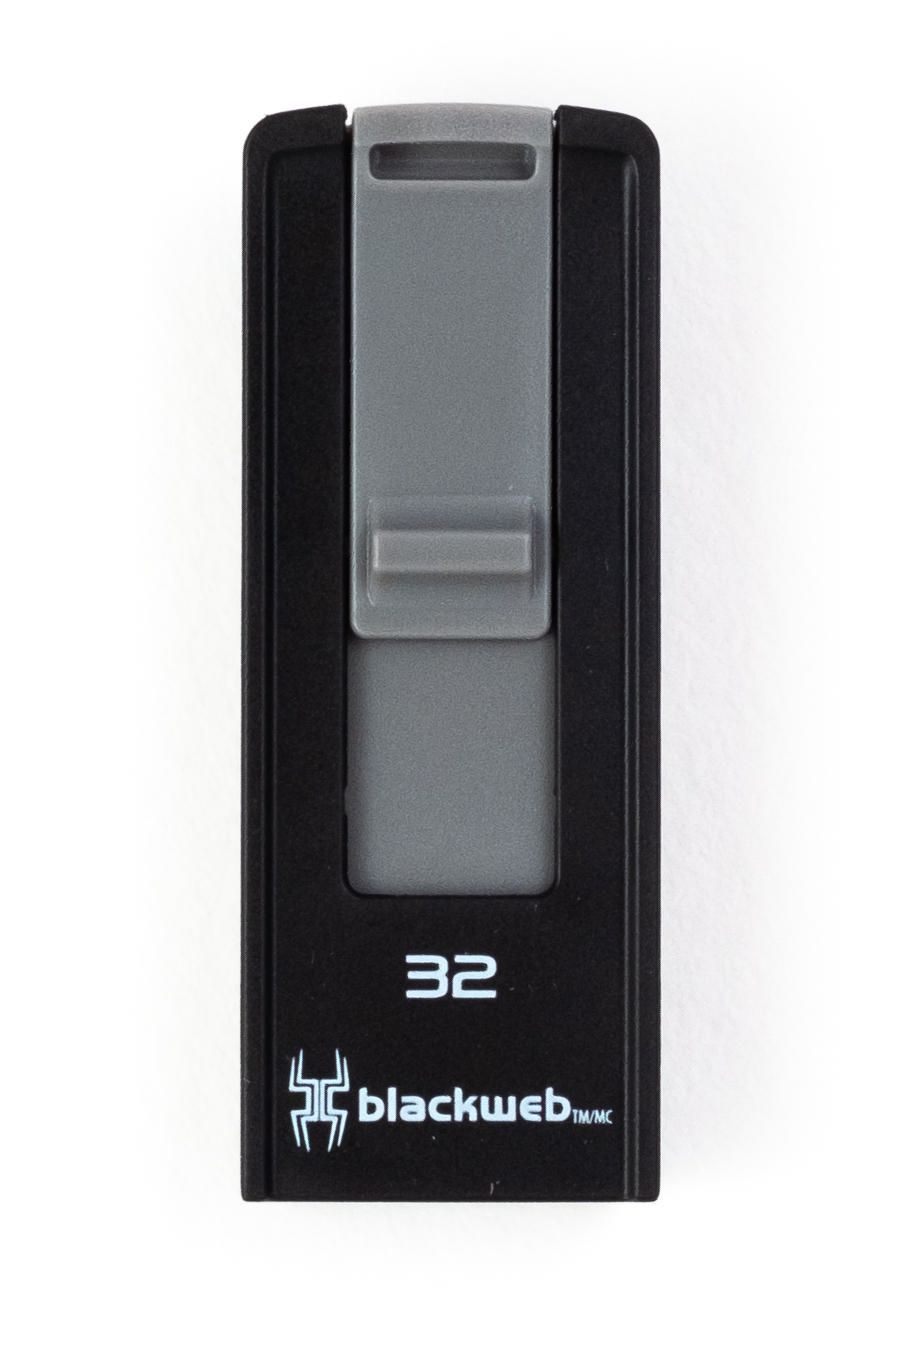 Black USB 3.0 drive with grey slider, made by blackweb